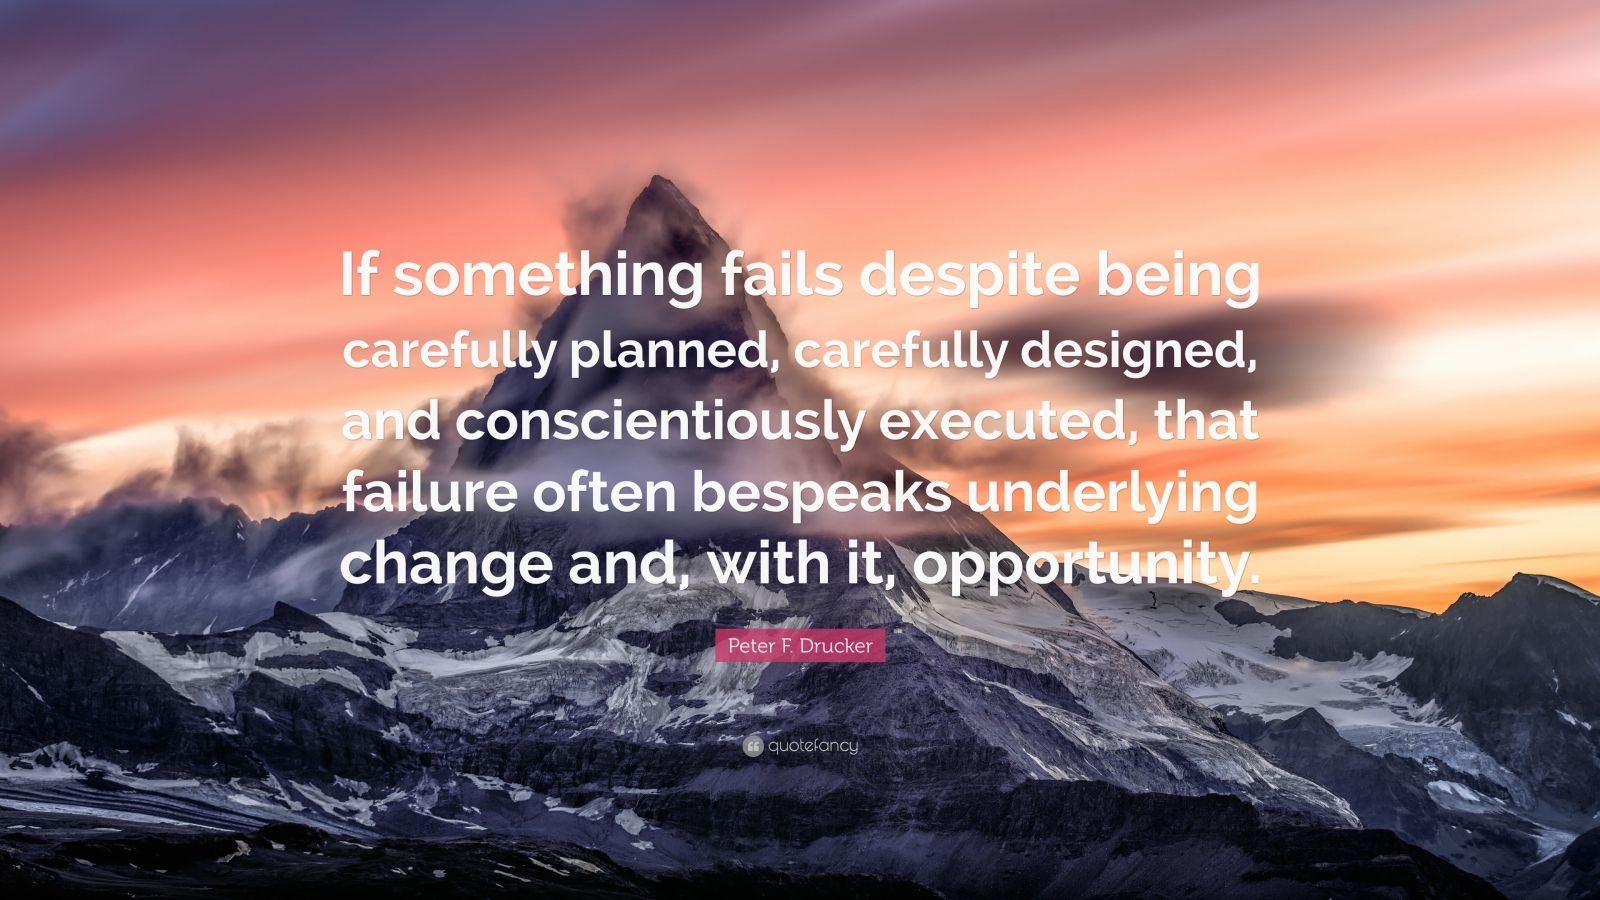 """Peter F. Drucker Quote: """"If something fails despite being carefully planned, carefully designed, and conscientiously executed, that failure often bespeaks underlying change and, with it, opportunity."""""""